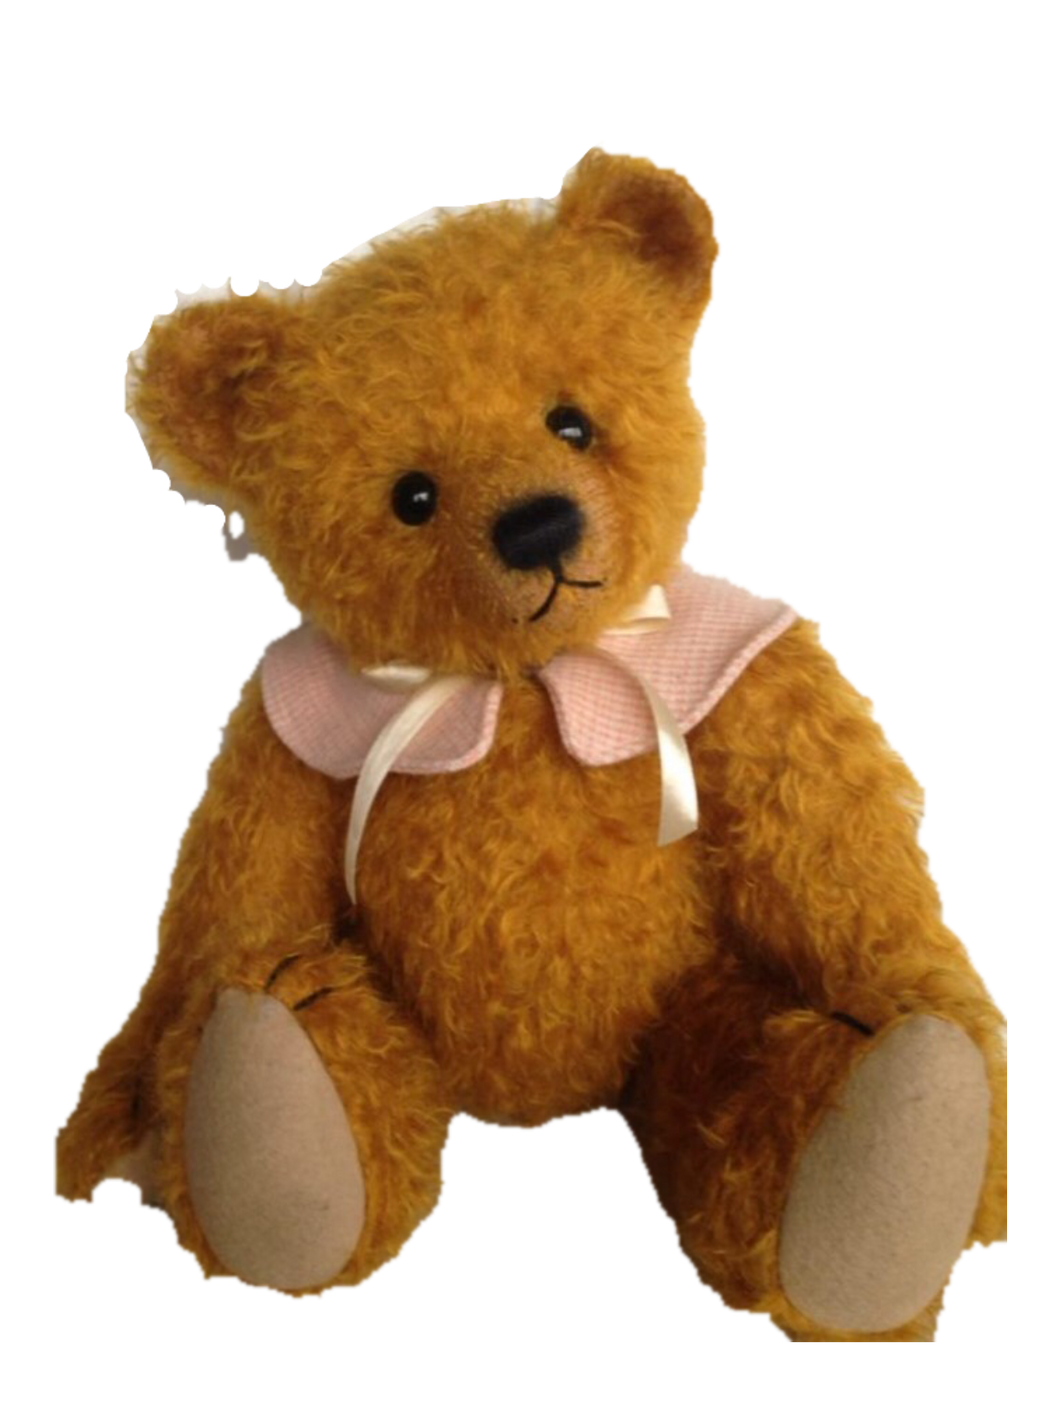 NEW 2021: TEDDY ELMO / CLEMENS MOHAIR ARTIST LIMITED EDITION BEAR